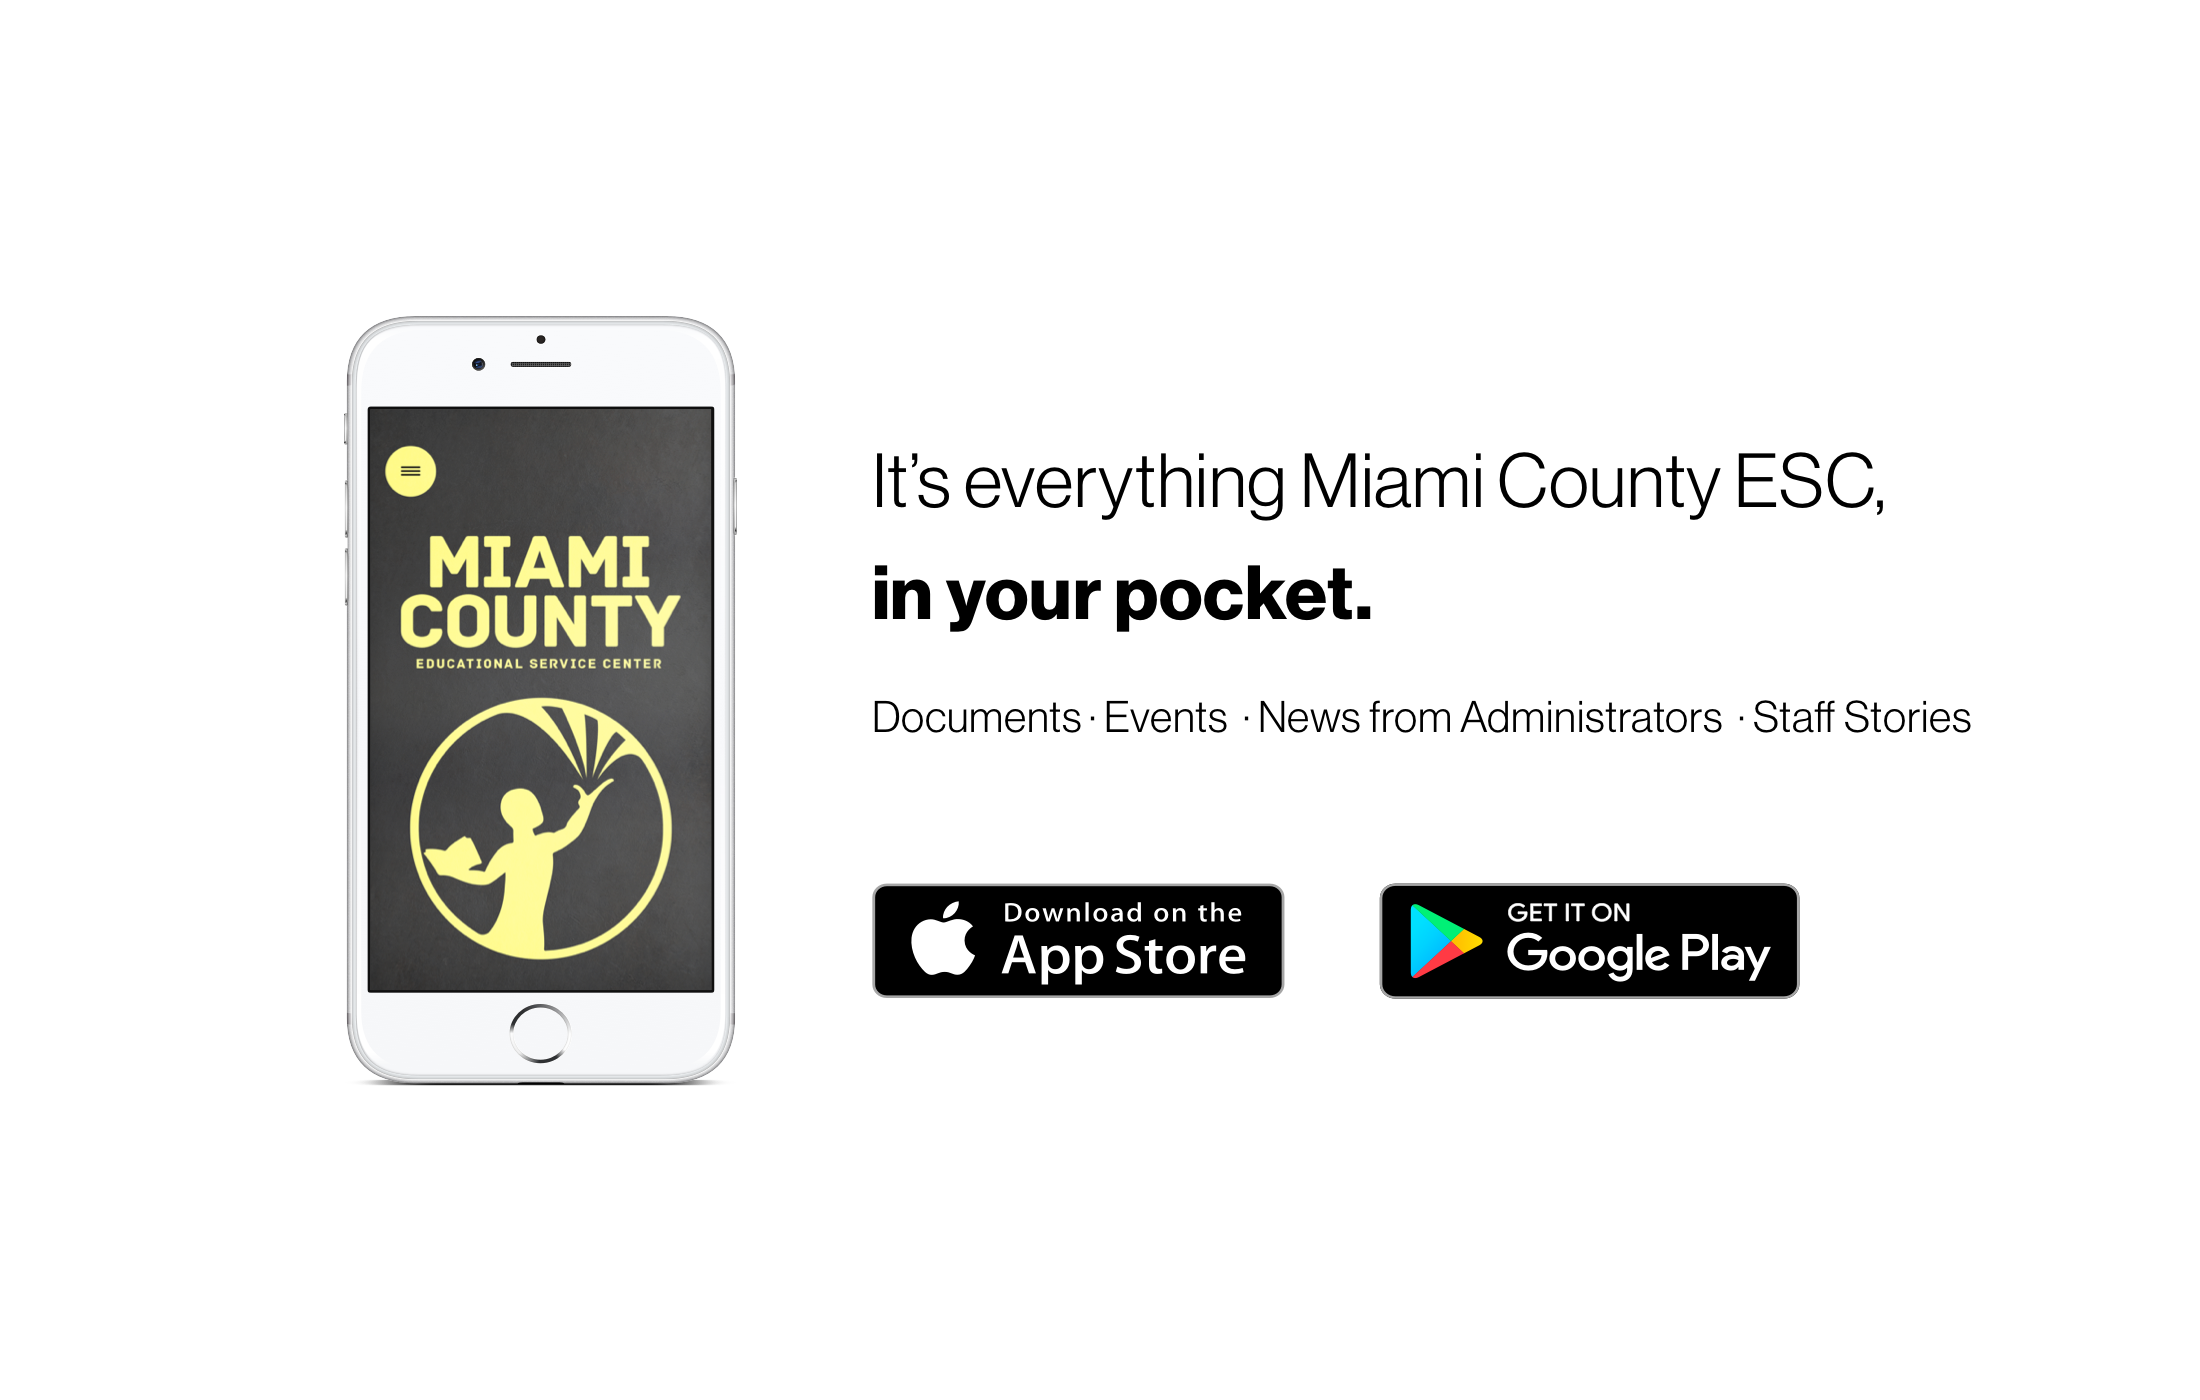 Image showing Miami County ESC app, with Apple and Google Play Store icons